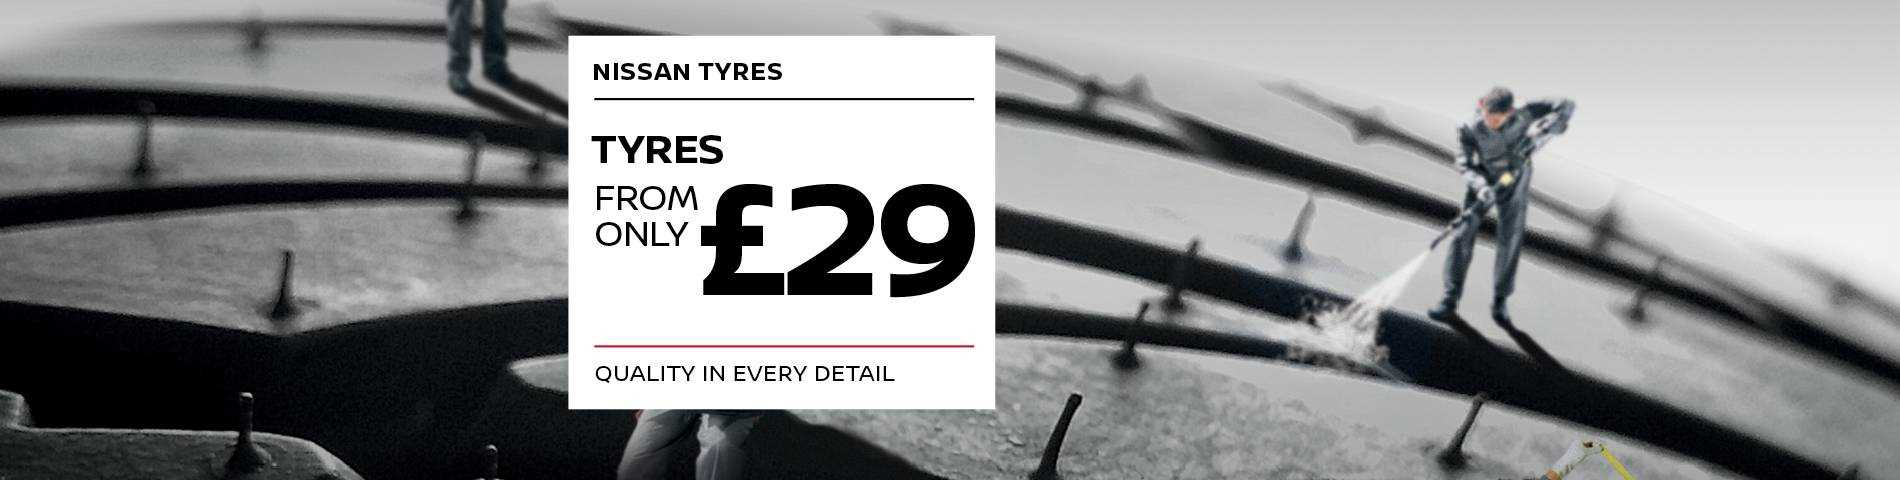 Tyres for £29 Banner